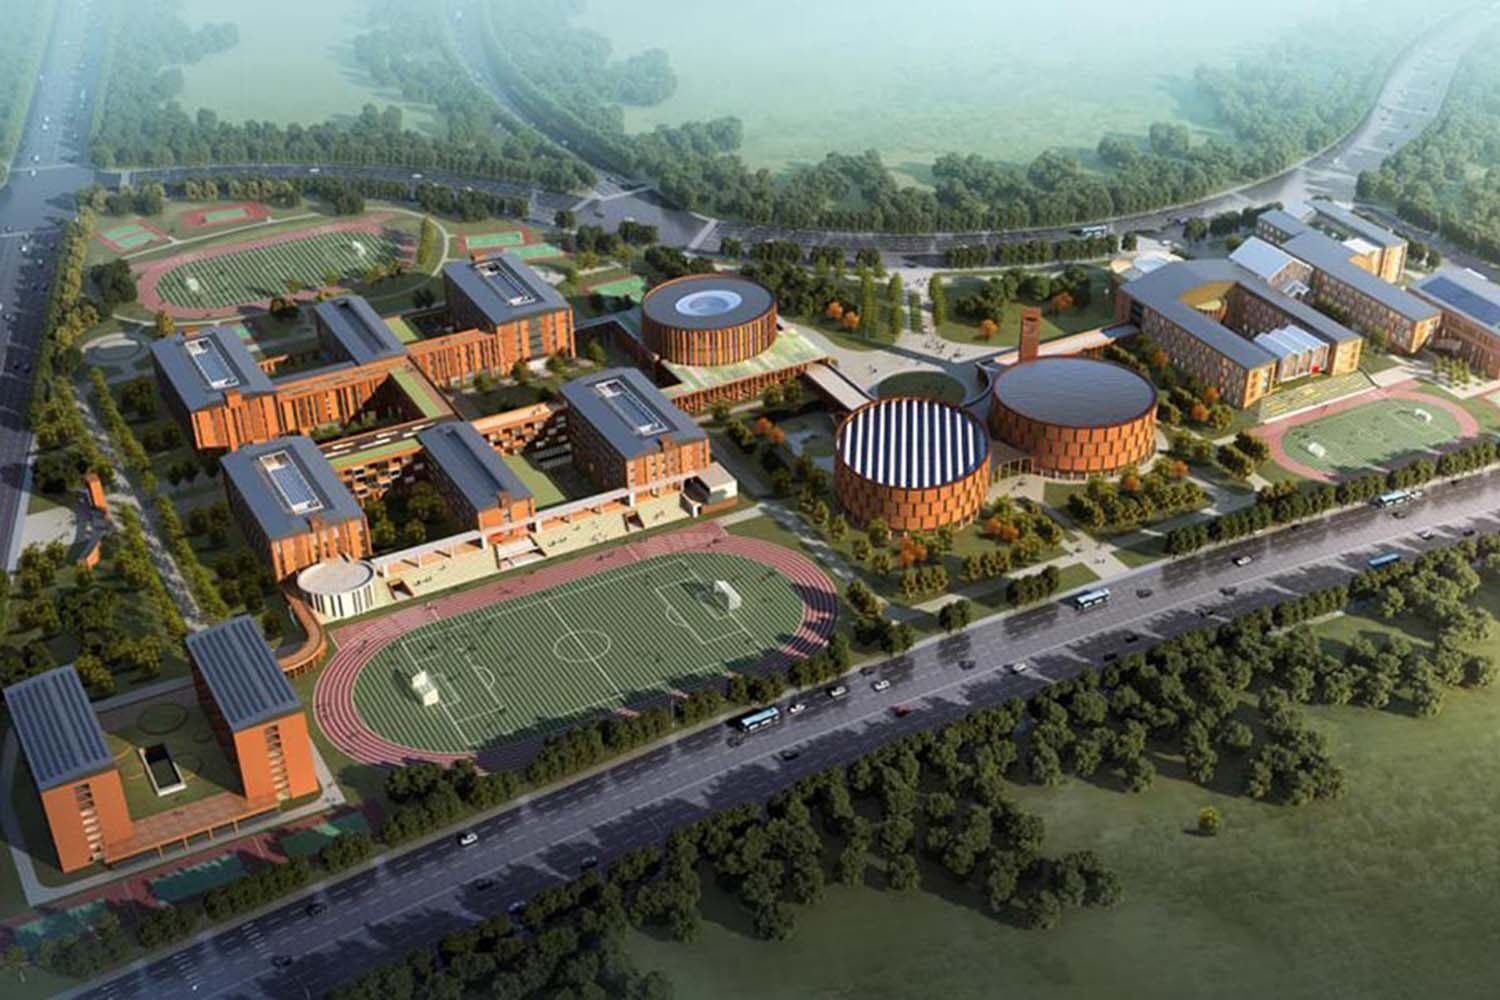 An aerial shot of the Beijing School campus